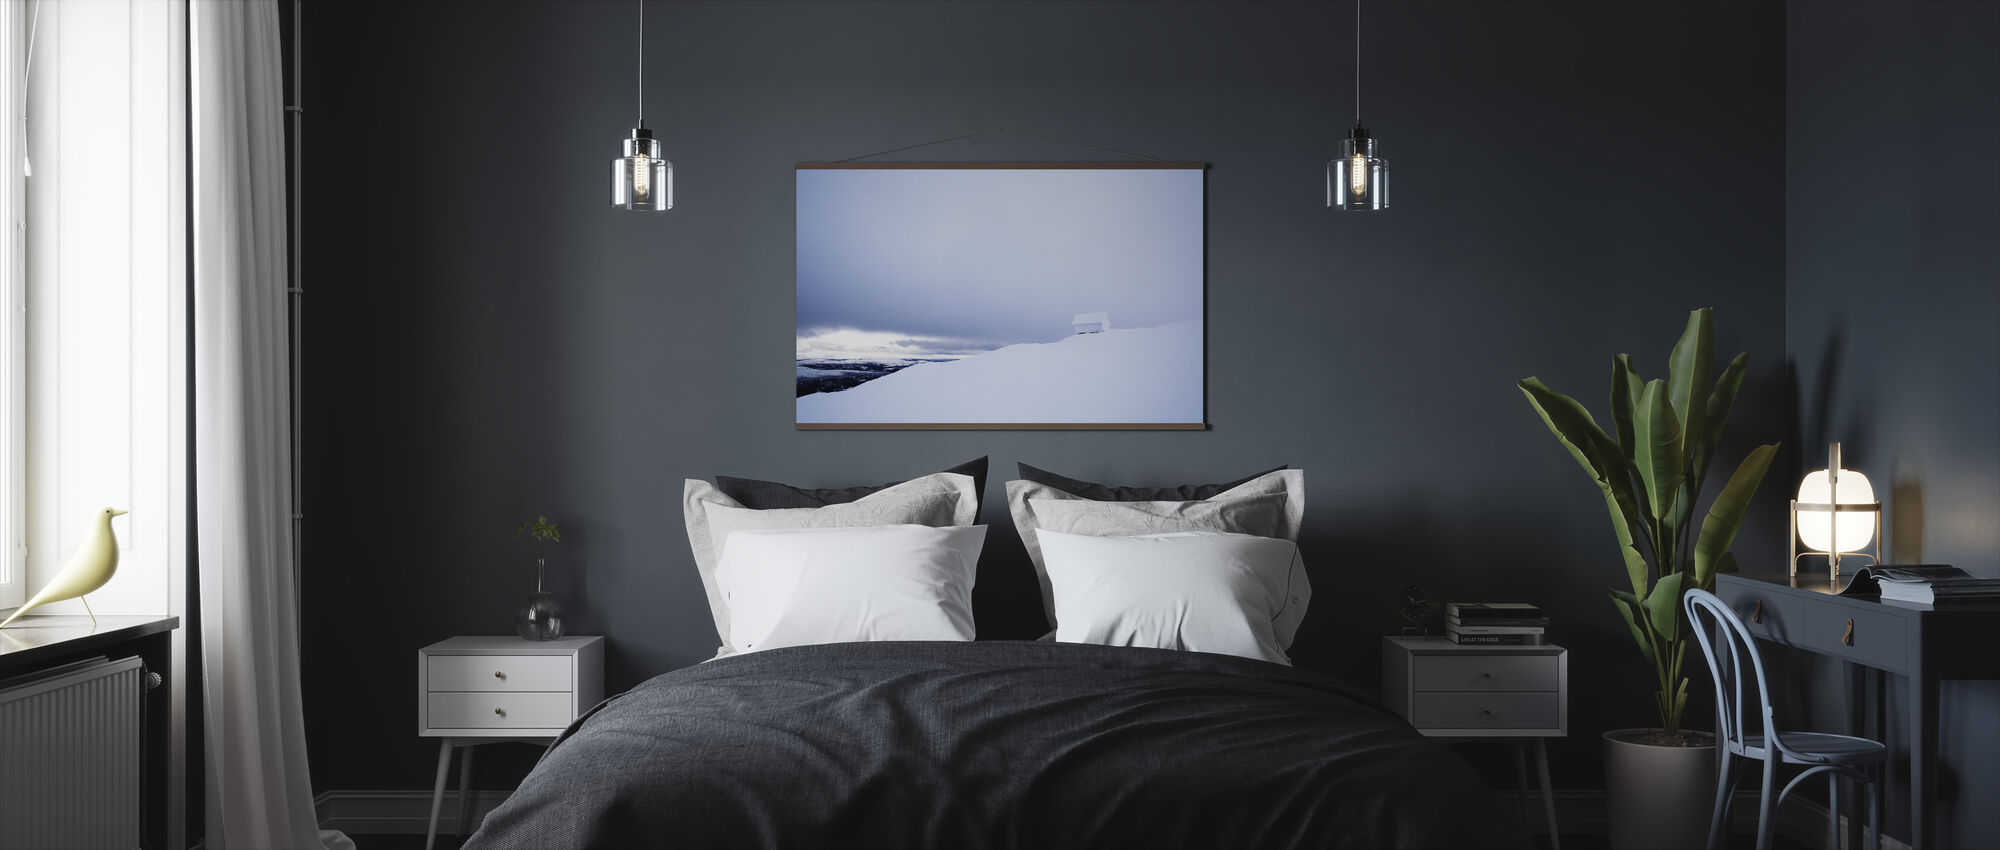 Beyond Beauty, Areskutan in Sweden - Poster - Bedroom